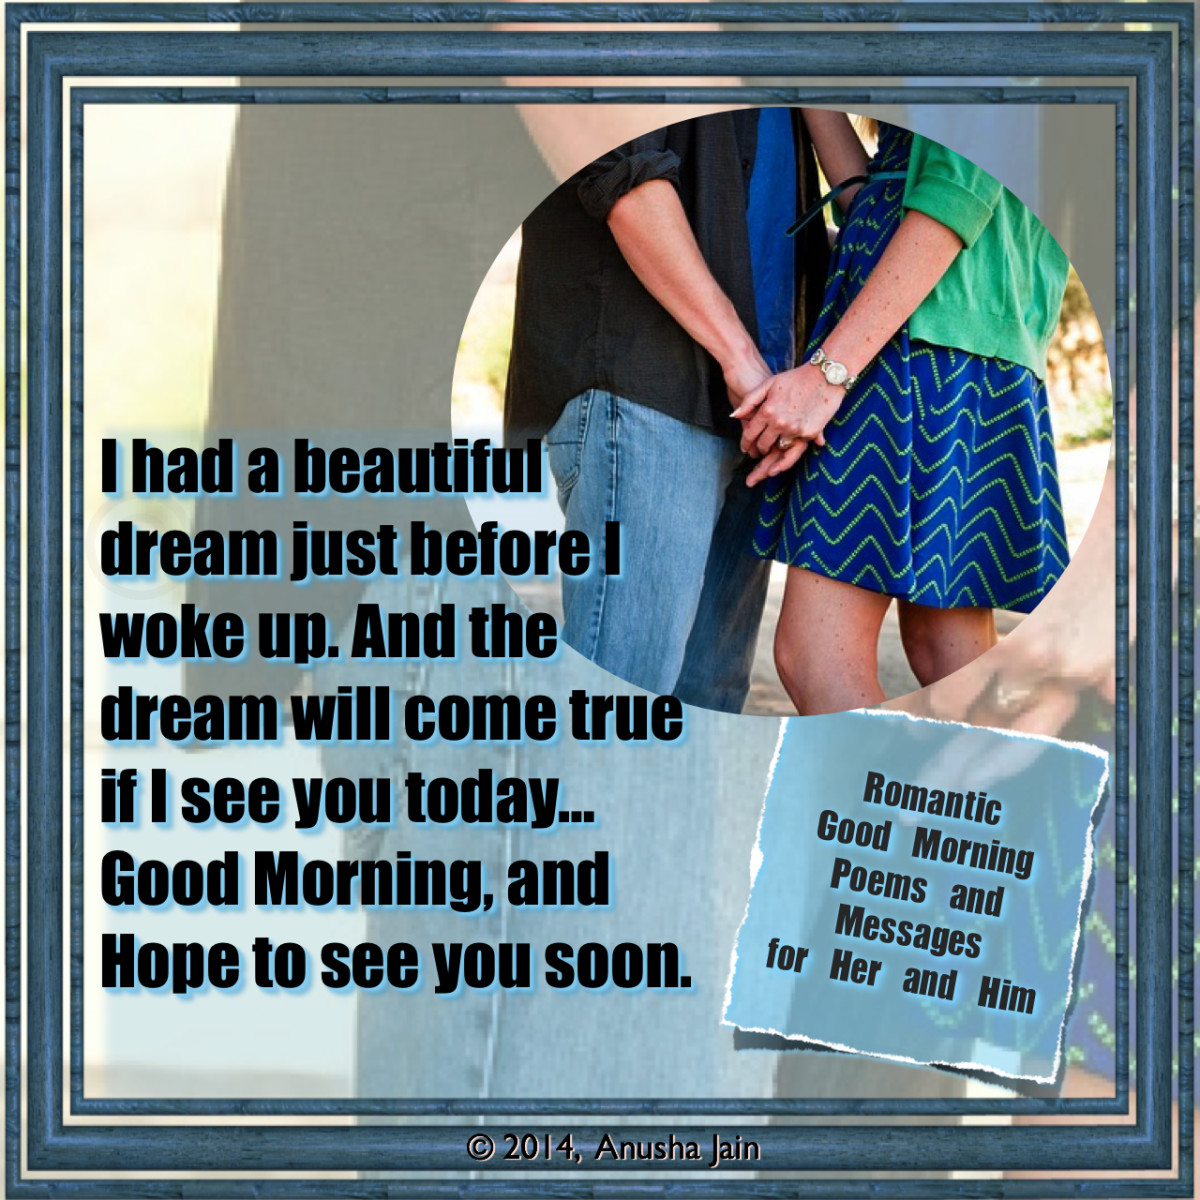 For wake up girlfriend poem Love Poems